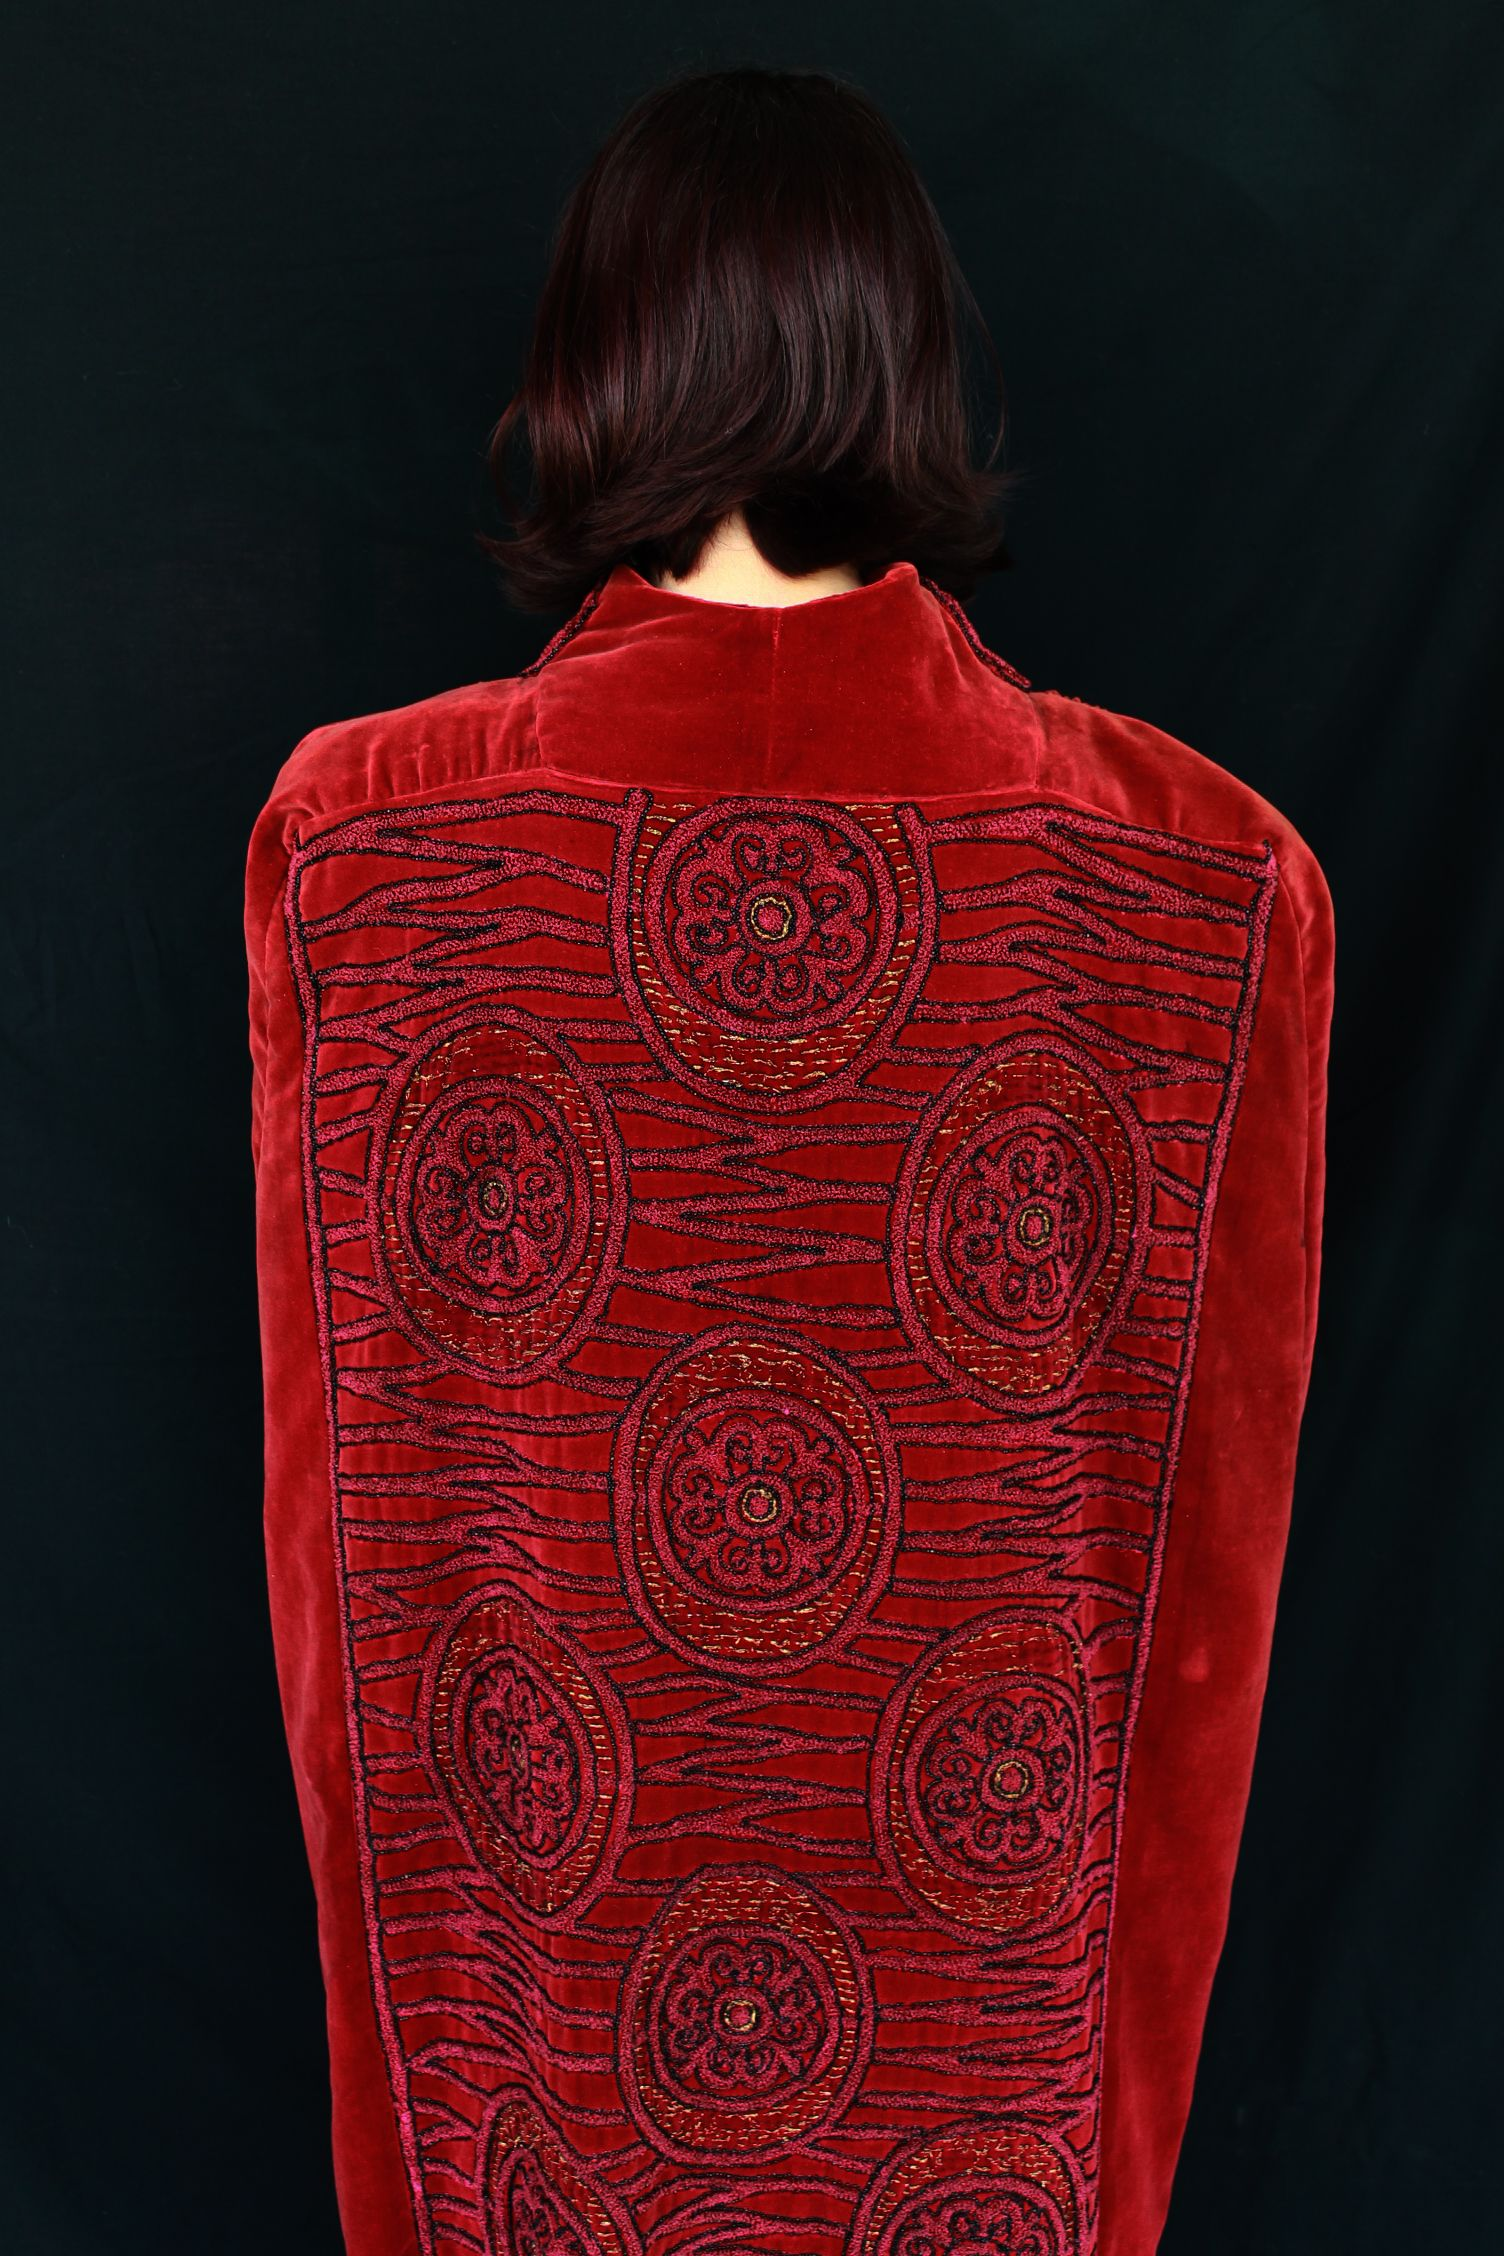 The most amazing beaded/embroidered 1940s red velvet cape I have ever seen!